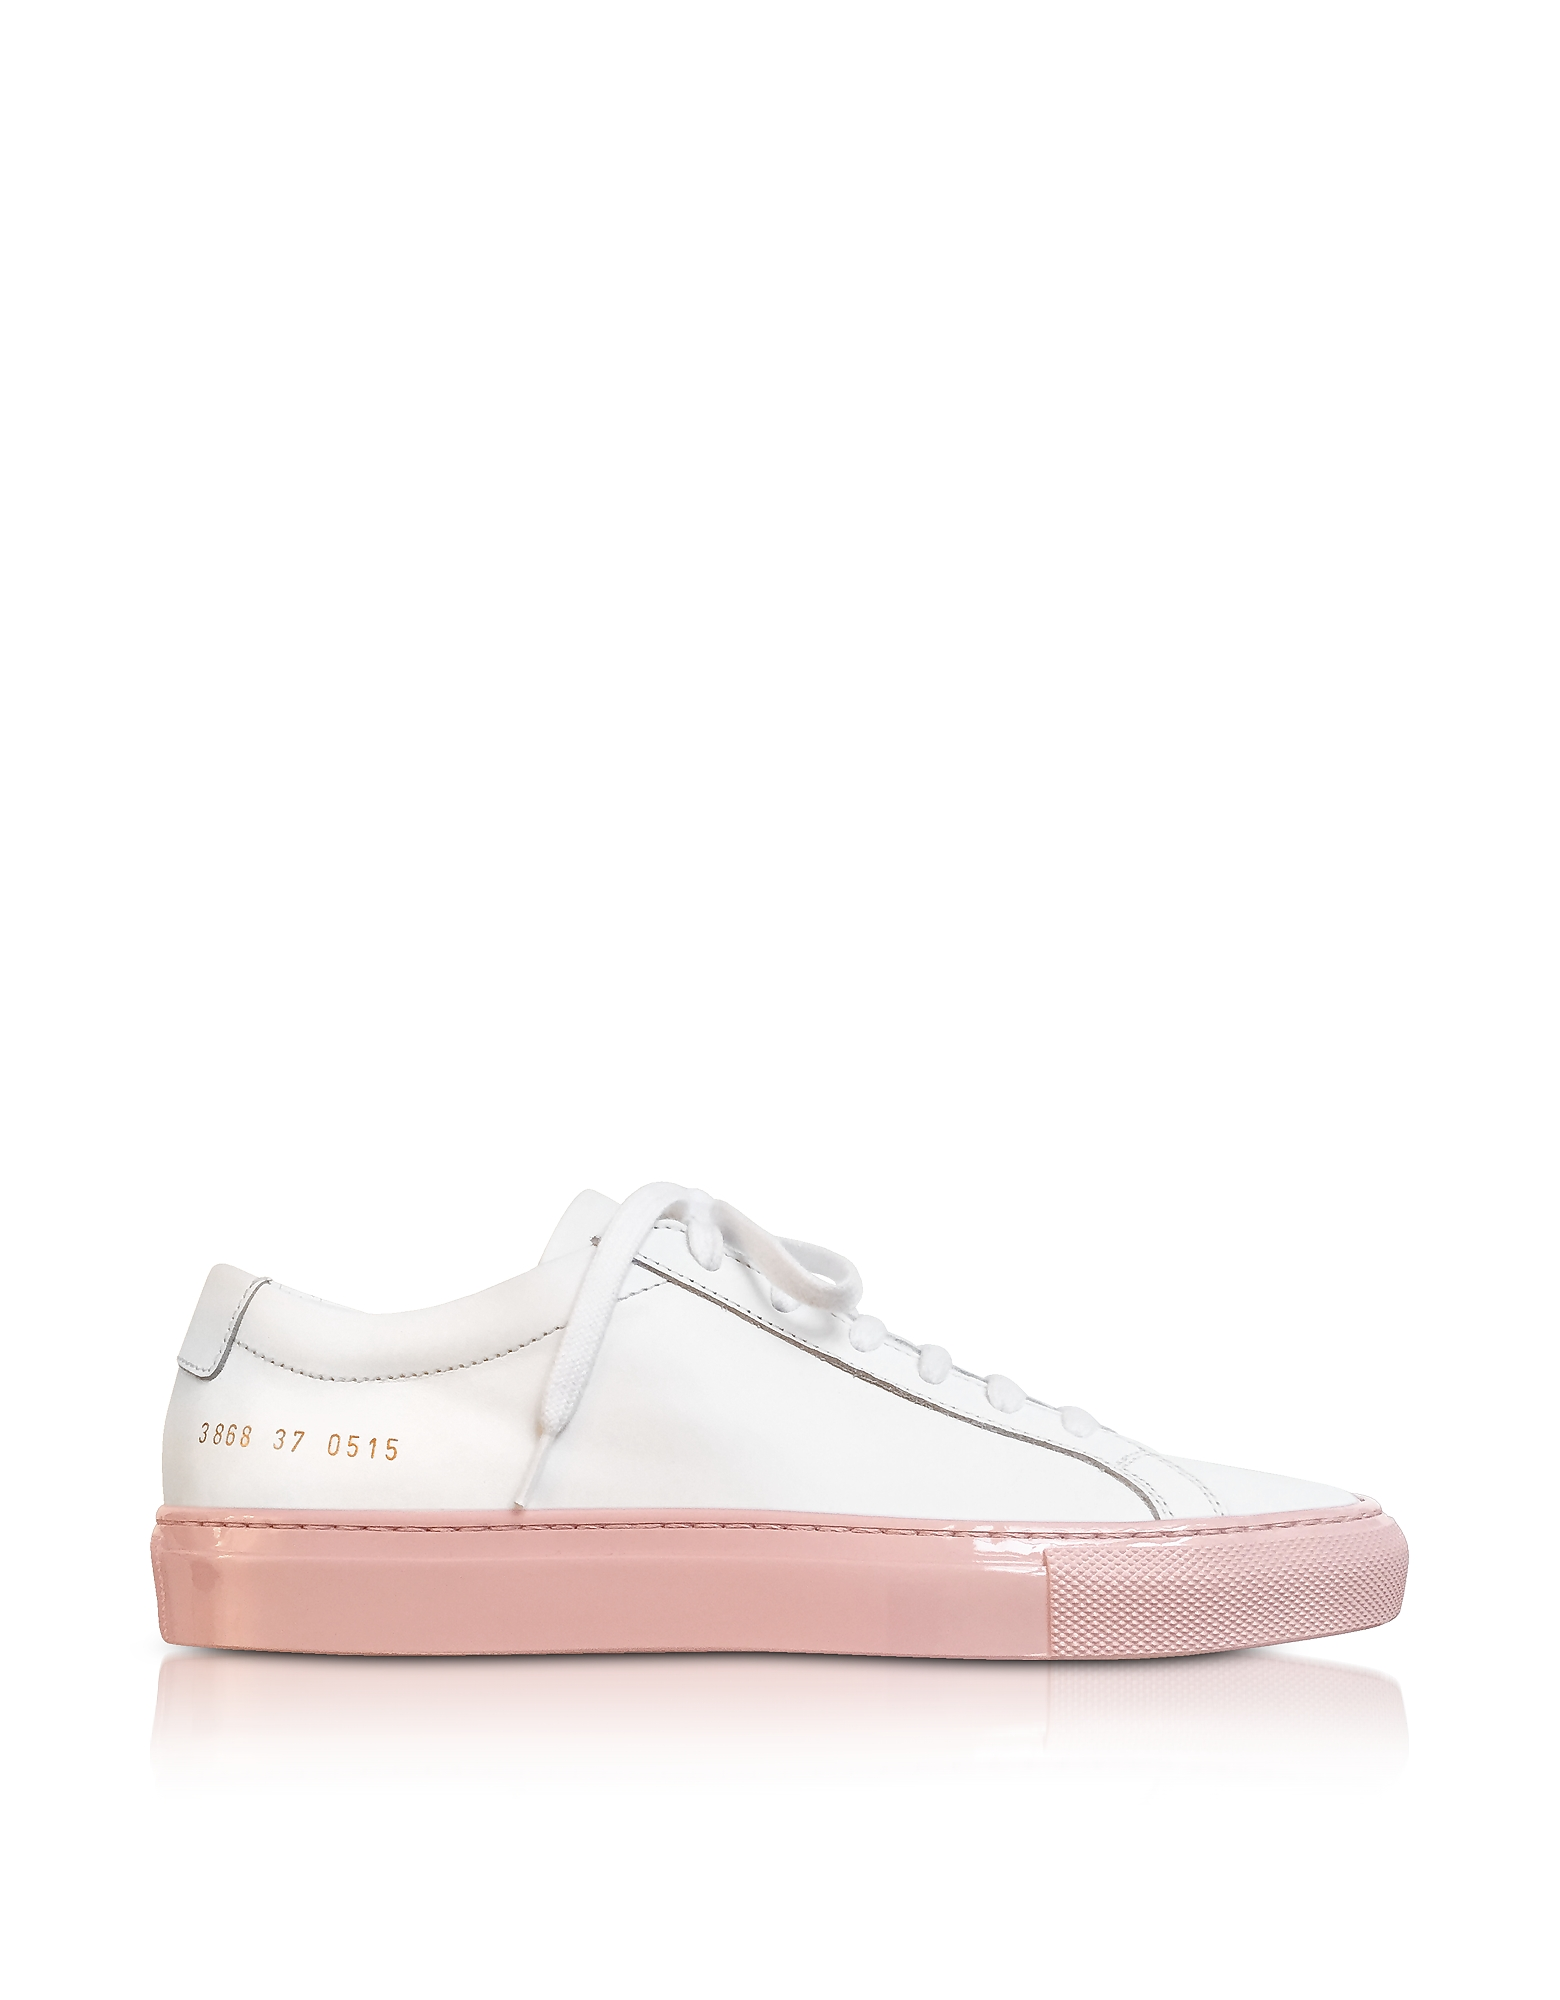 Achilles Sneakers Low Top da Donna Bianche e Rosa in Pelle